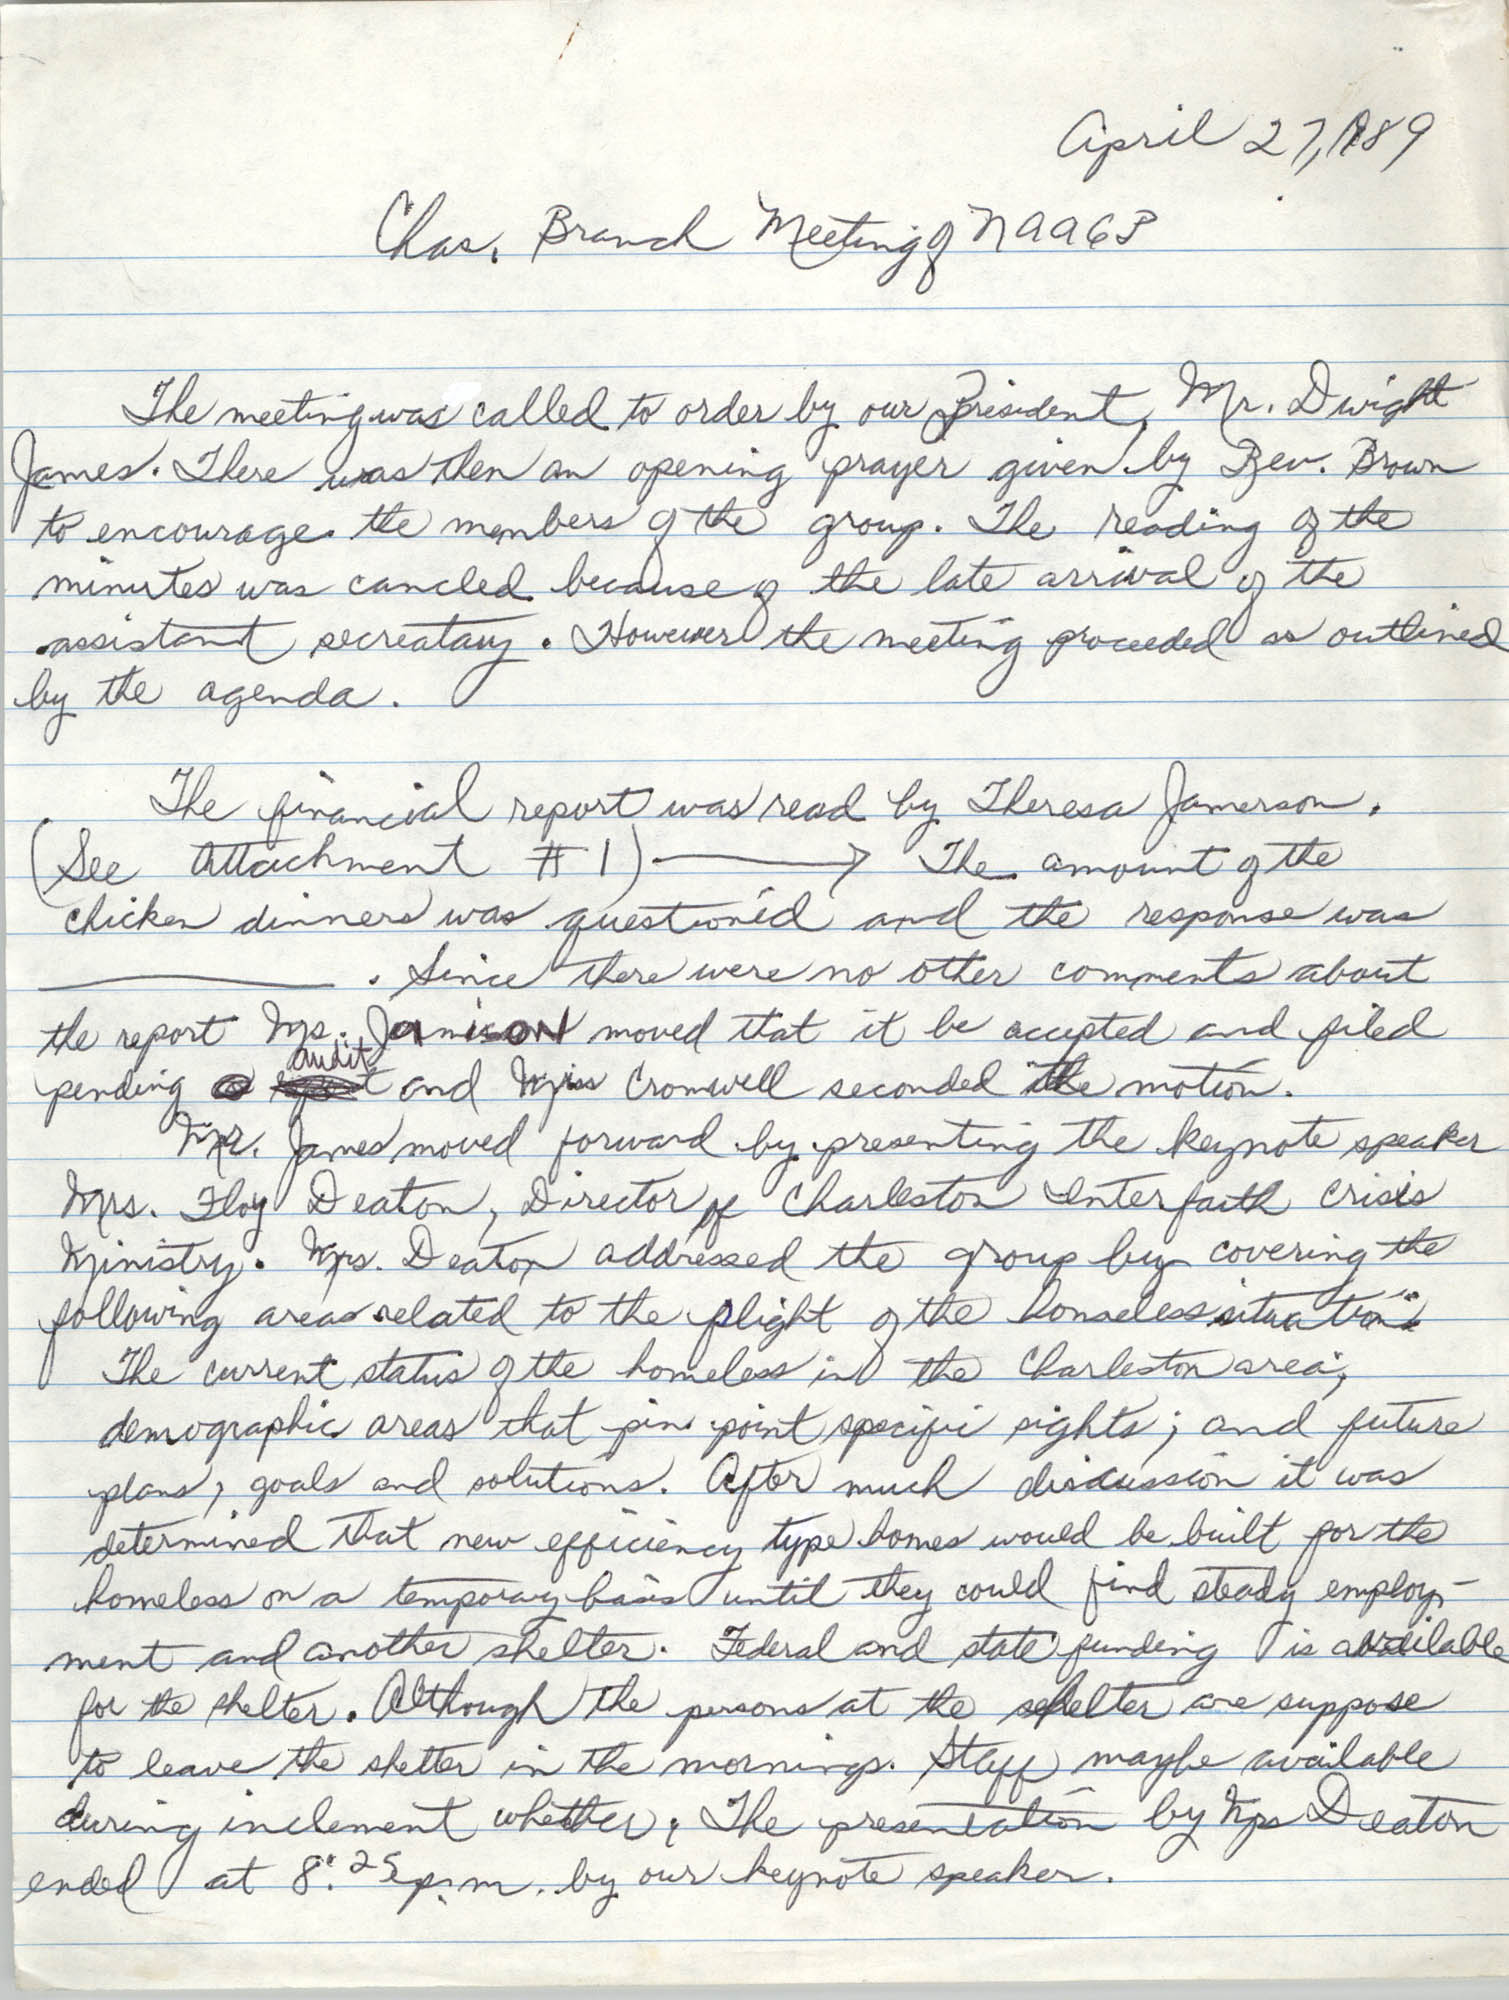 Minutes, Charleston Branch of the NAACP, March 30, 1989